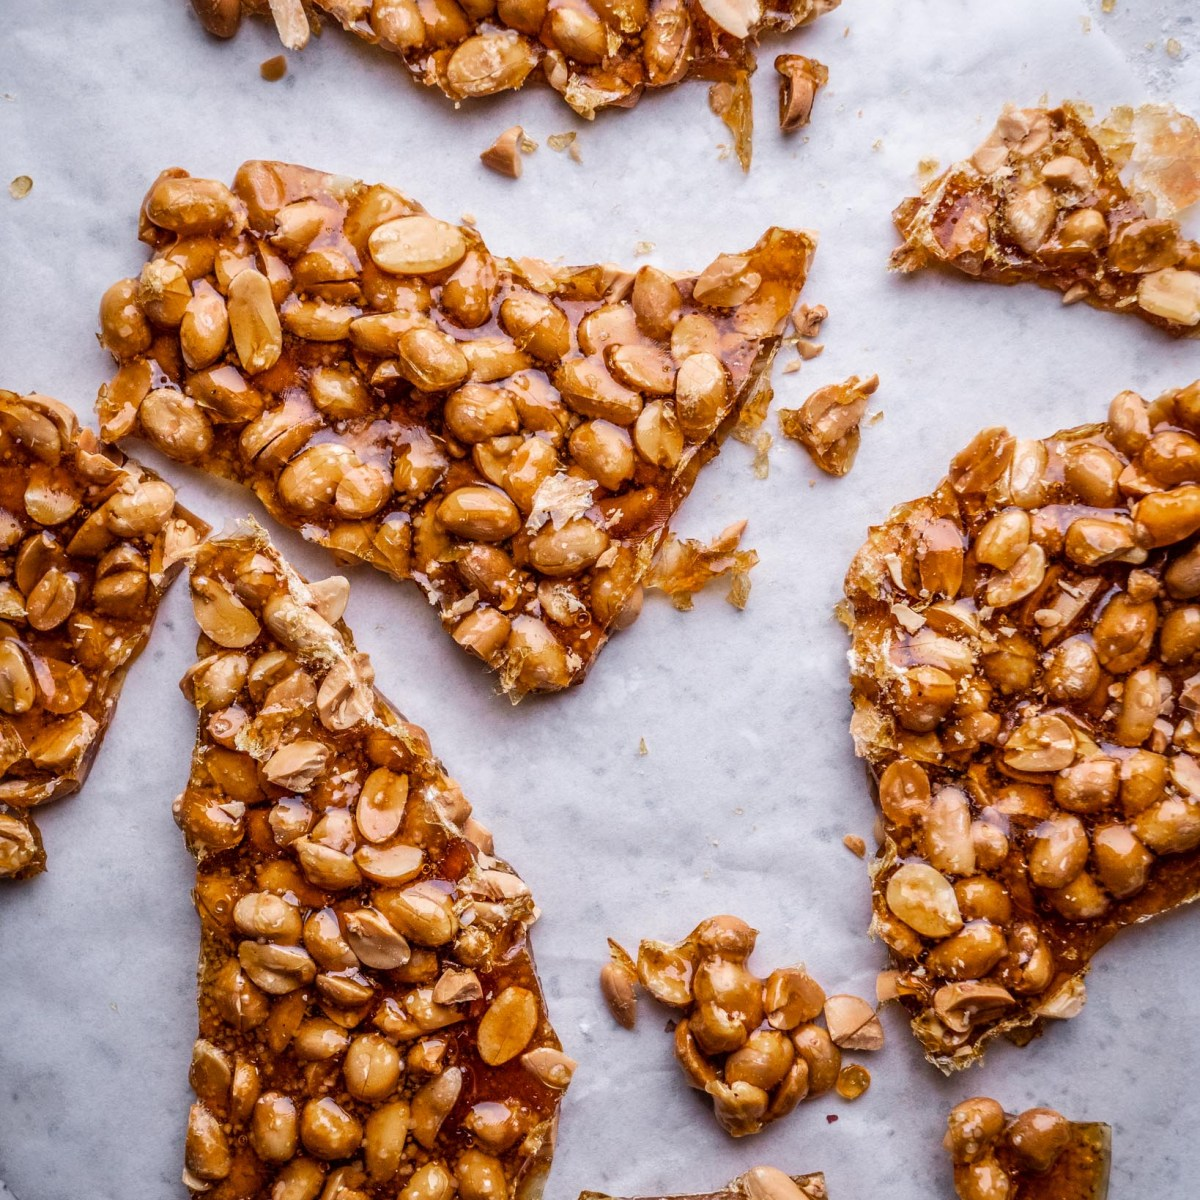 golden crunchy peanut brittle shards on tra lined with greaseproof paper